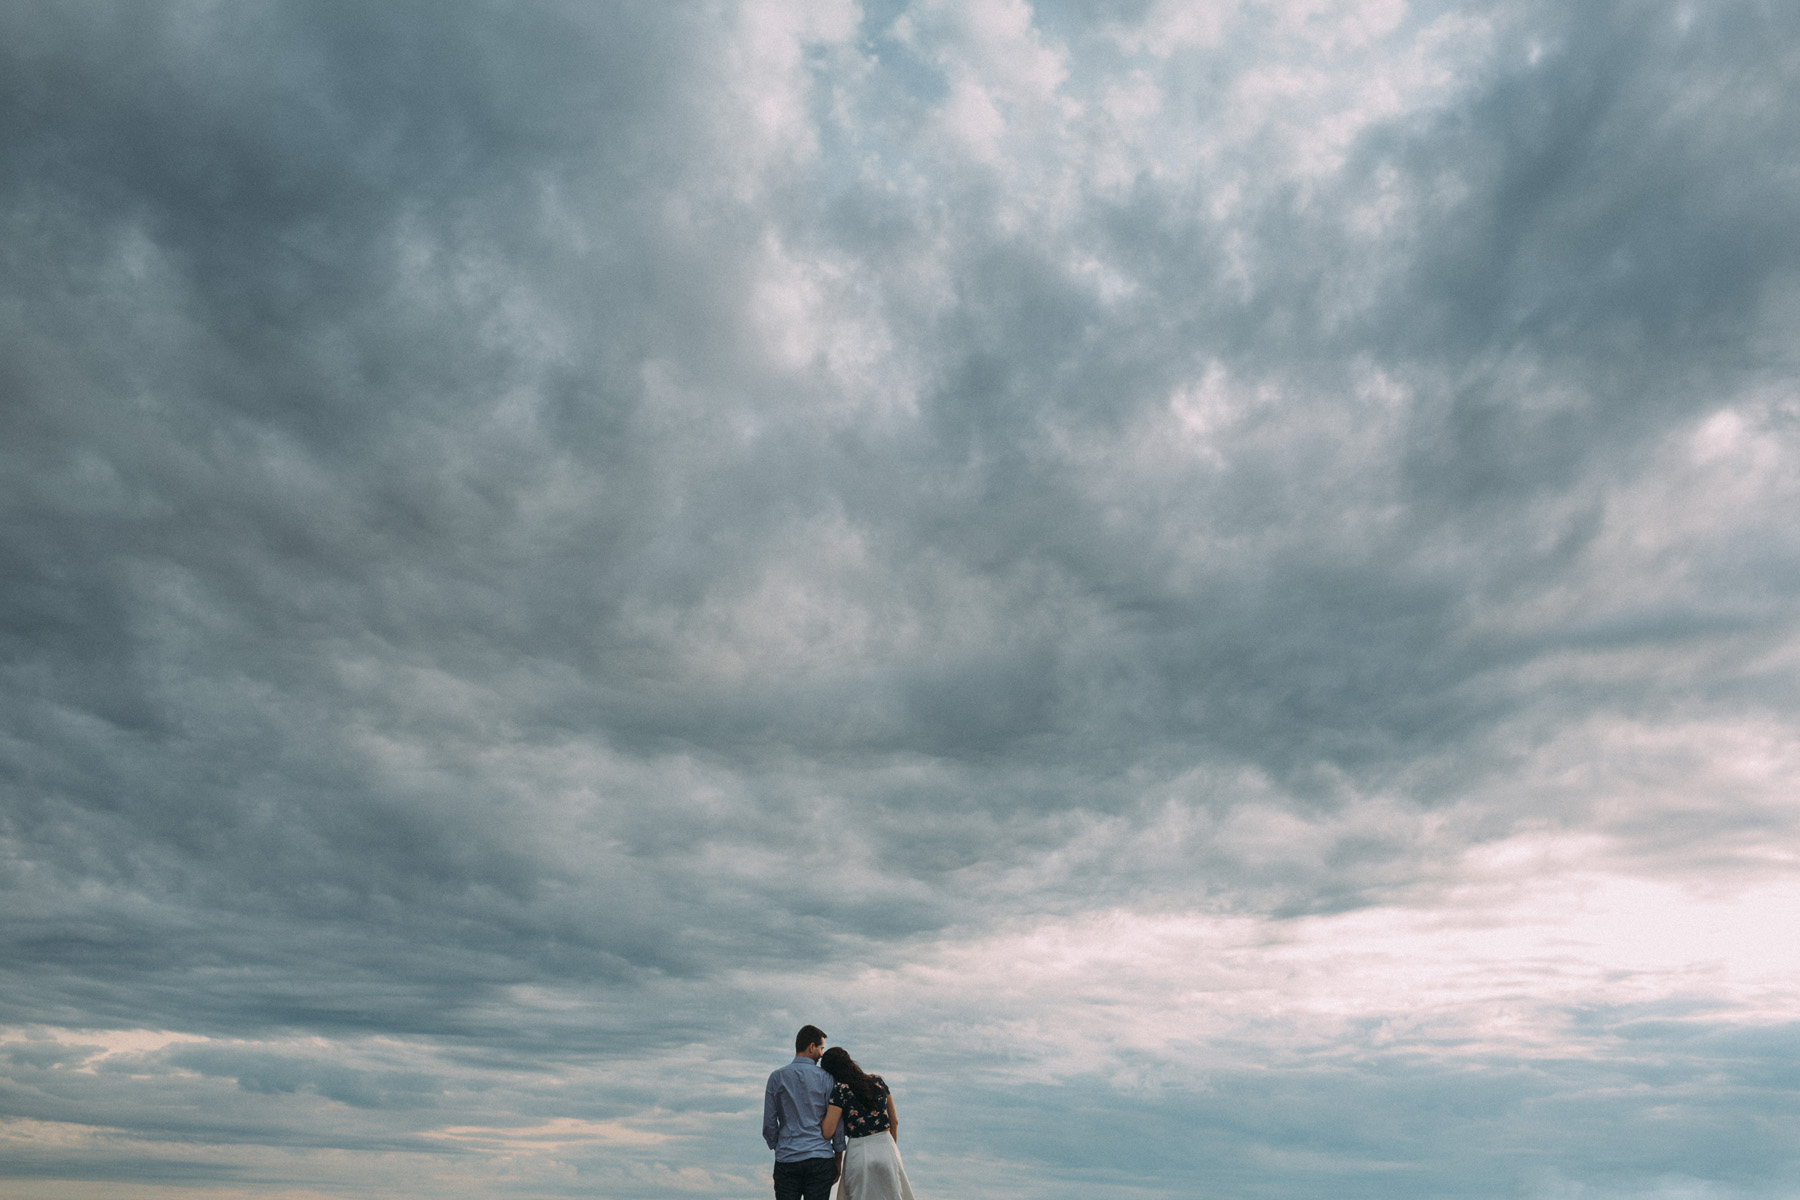 modern-Toronto-engagement-photography-Esplanade-by-Artanis-Collective-wedding-photographer-Sam-Wong_01.jpg